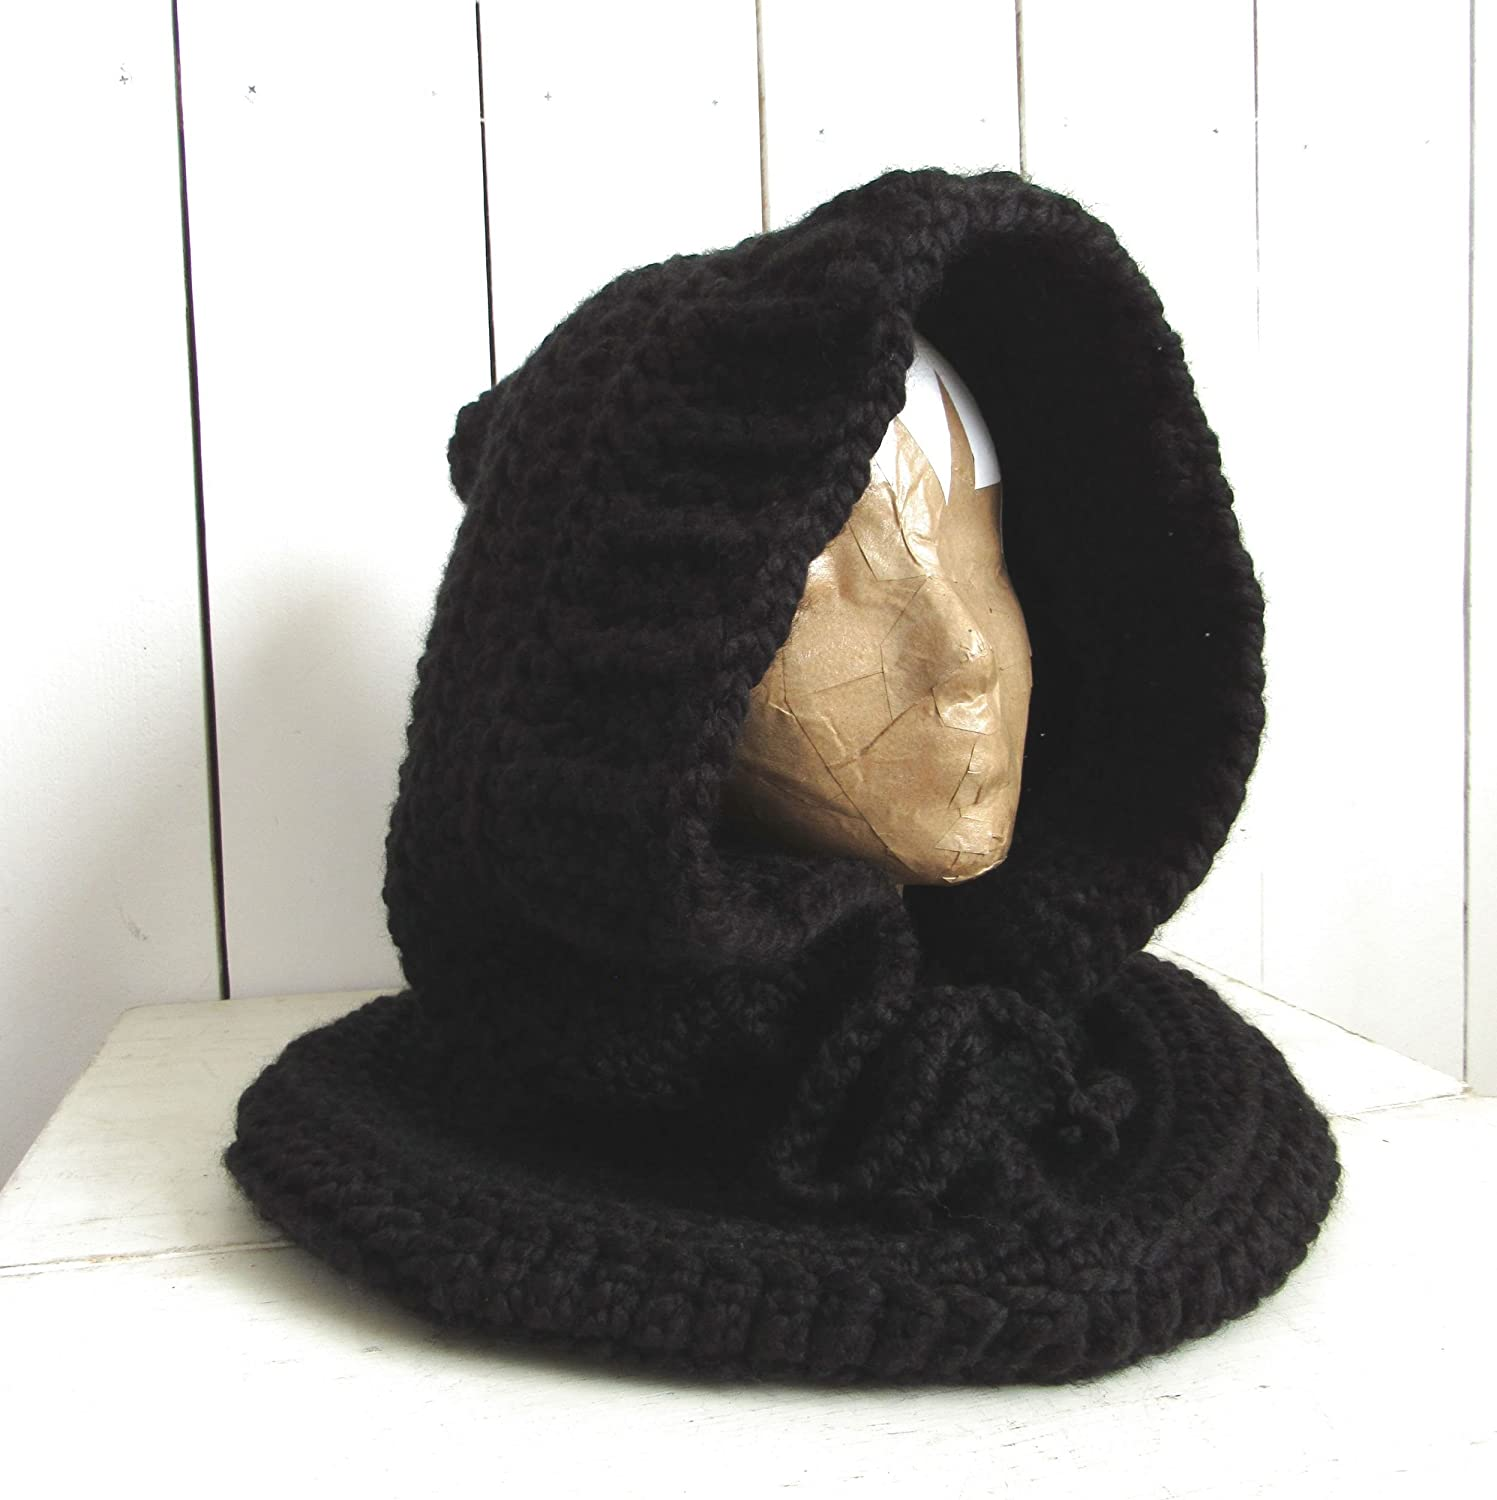 Hand Knit Black Hooded Cowl Scarf (More Color Options Available) - DeluxeAdultCostumes.com